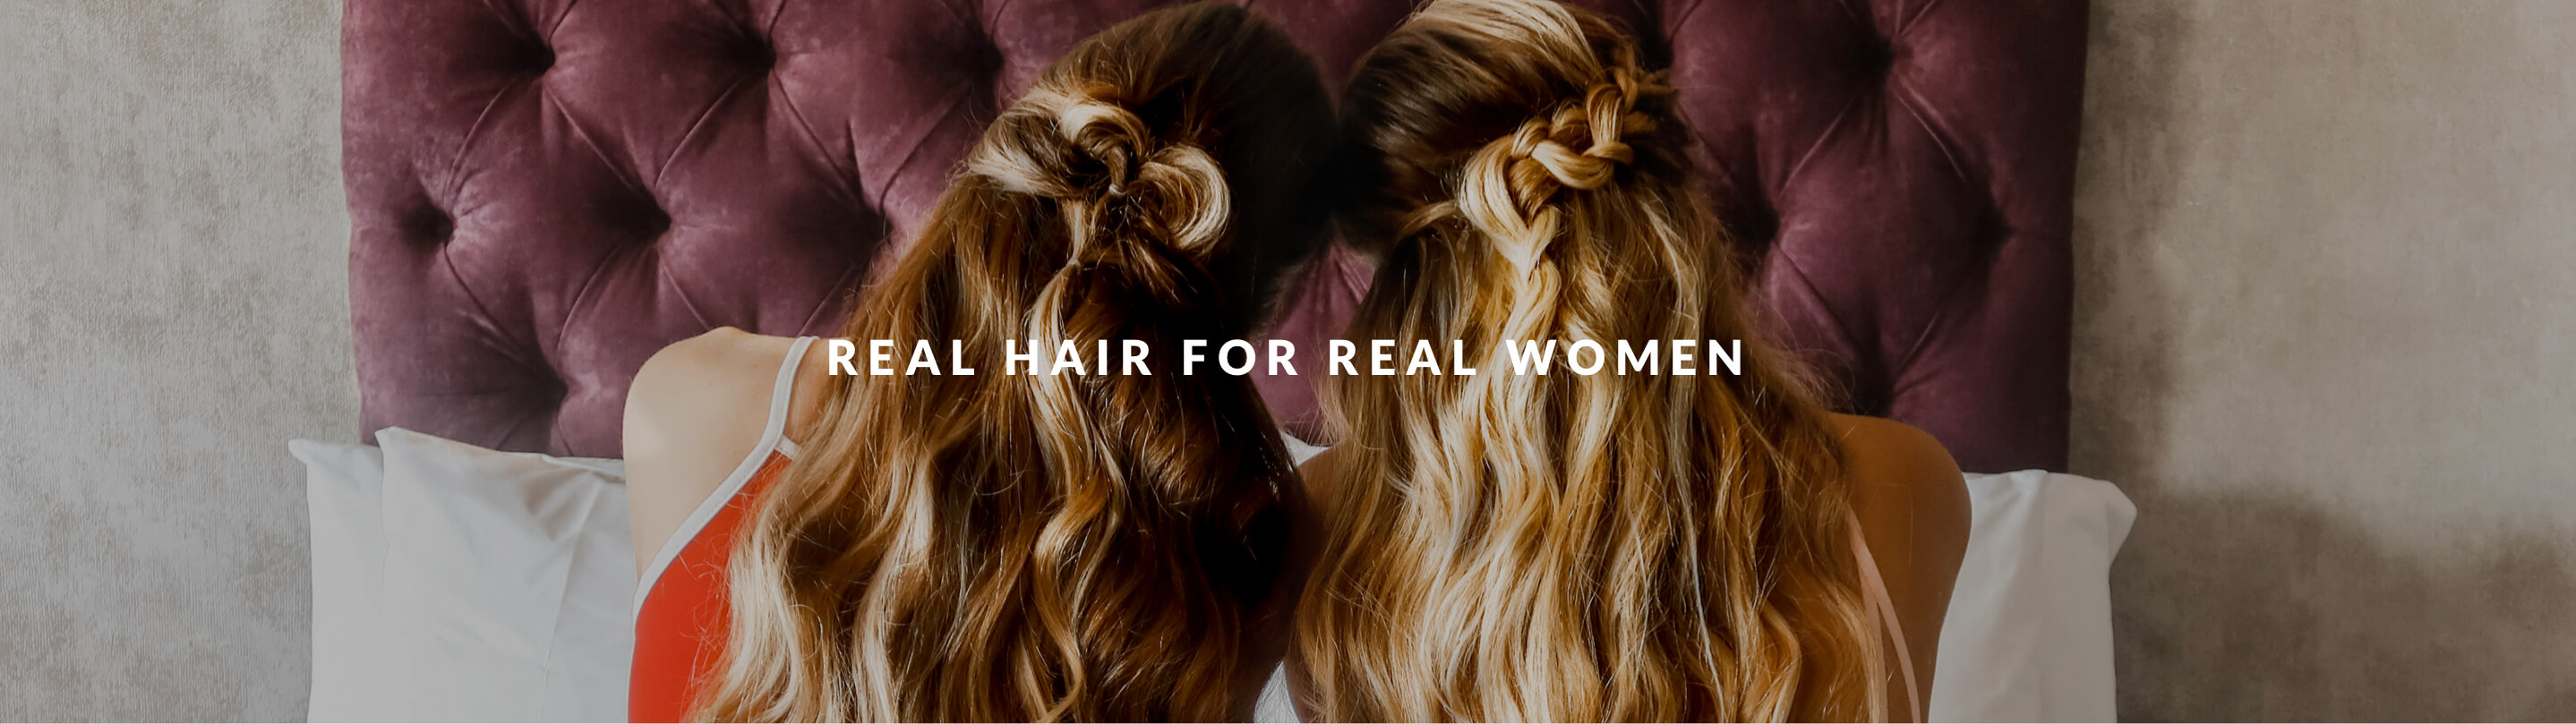 Real hair for real women